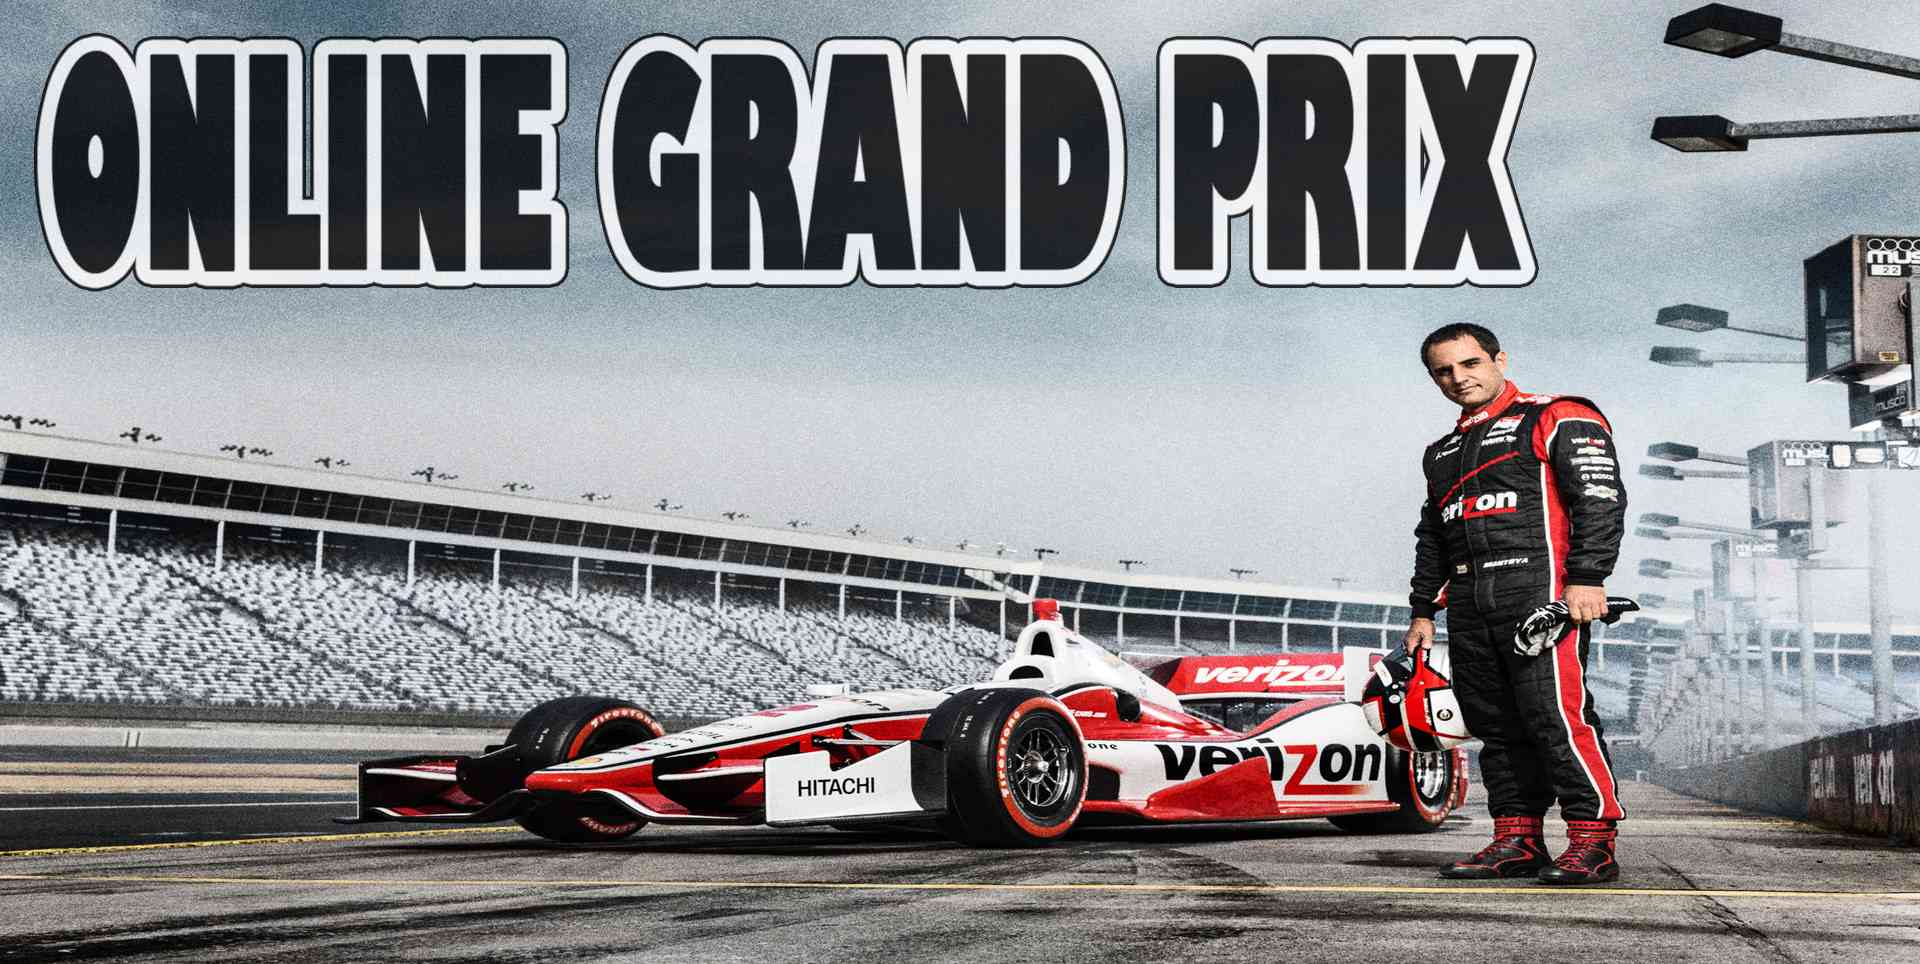 Indy Grand Prix of Louisiana 2015 Live Stream